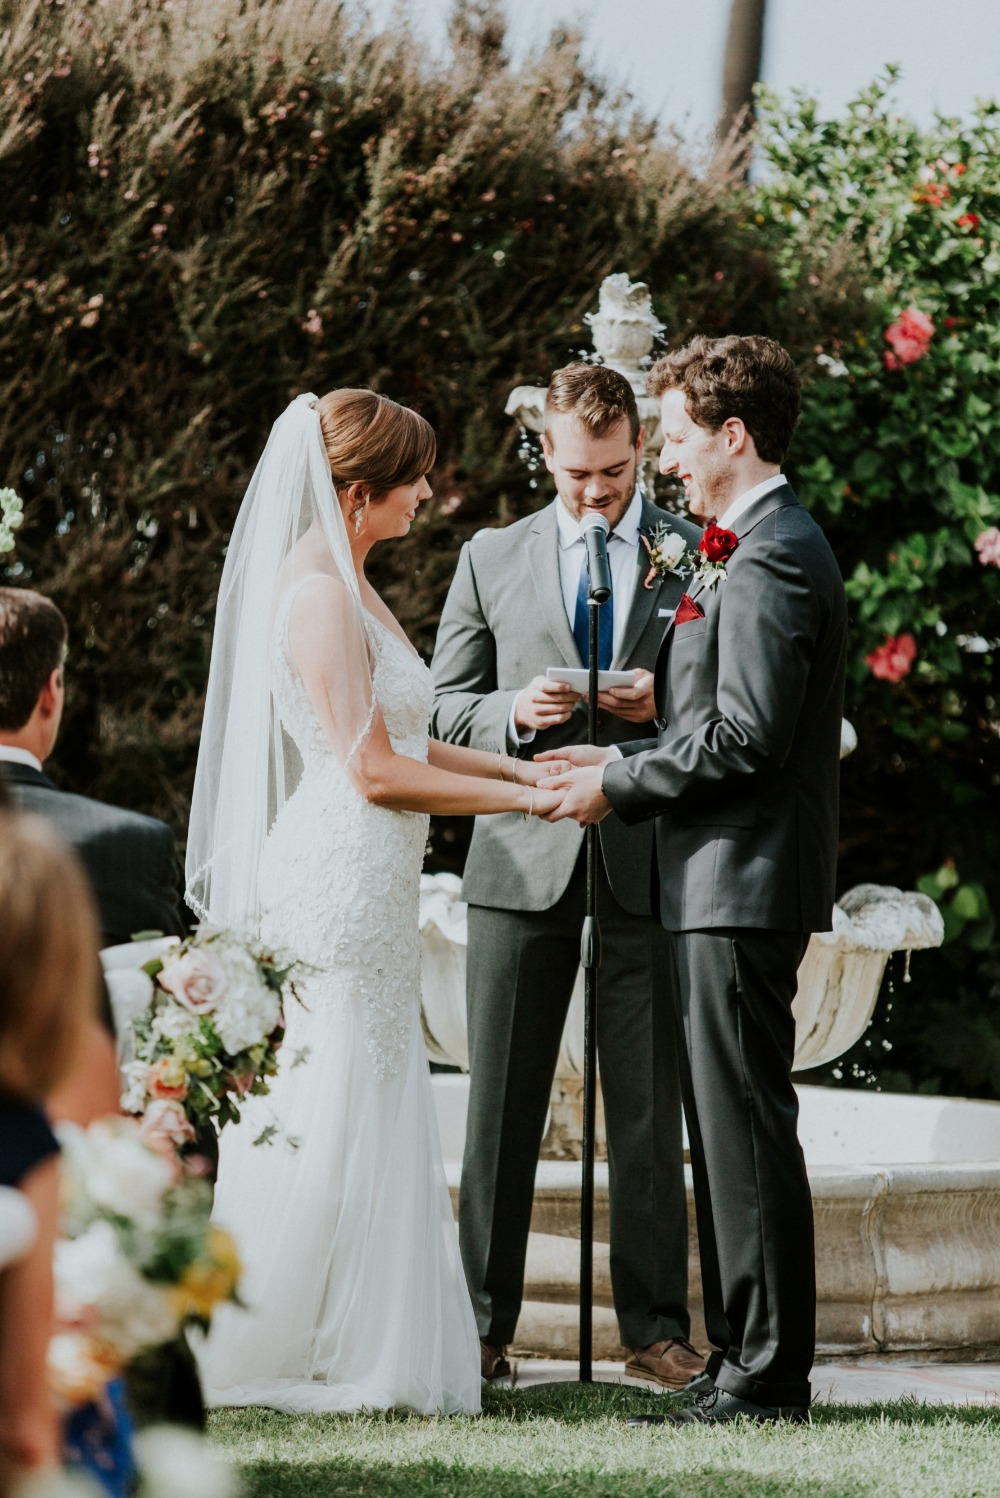 Red and white outdoor wedding in La Jolla